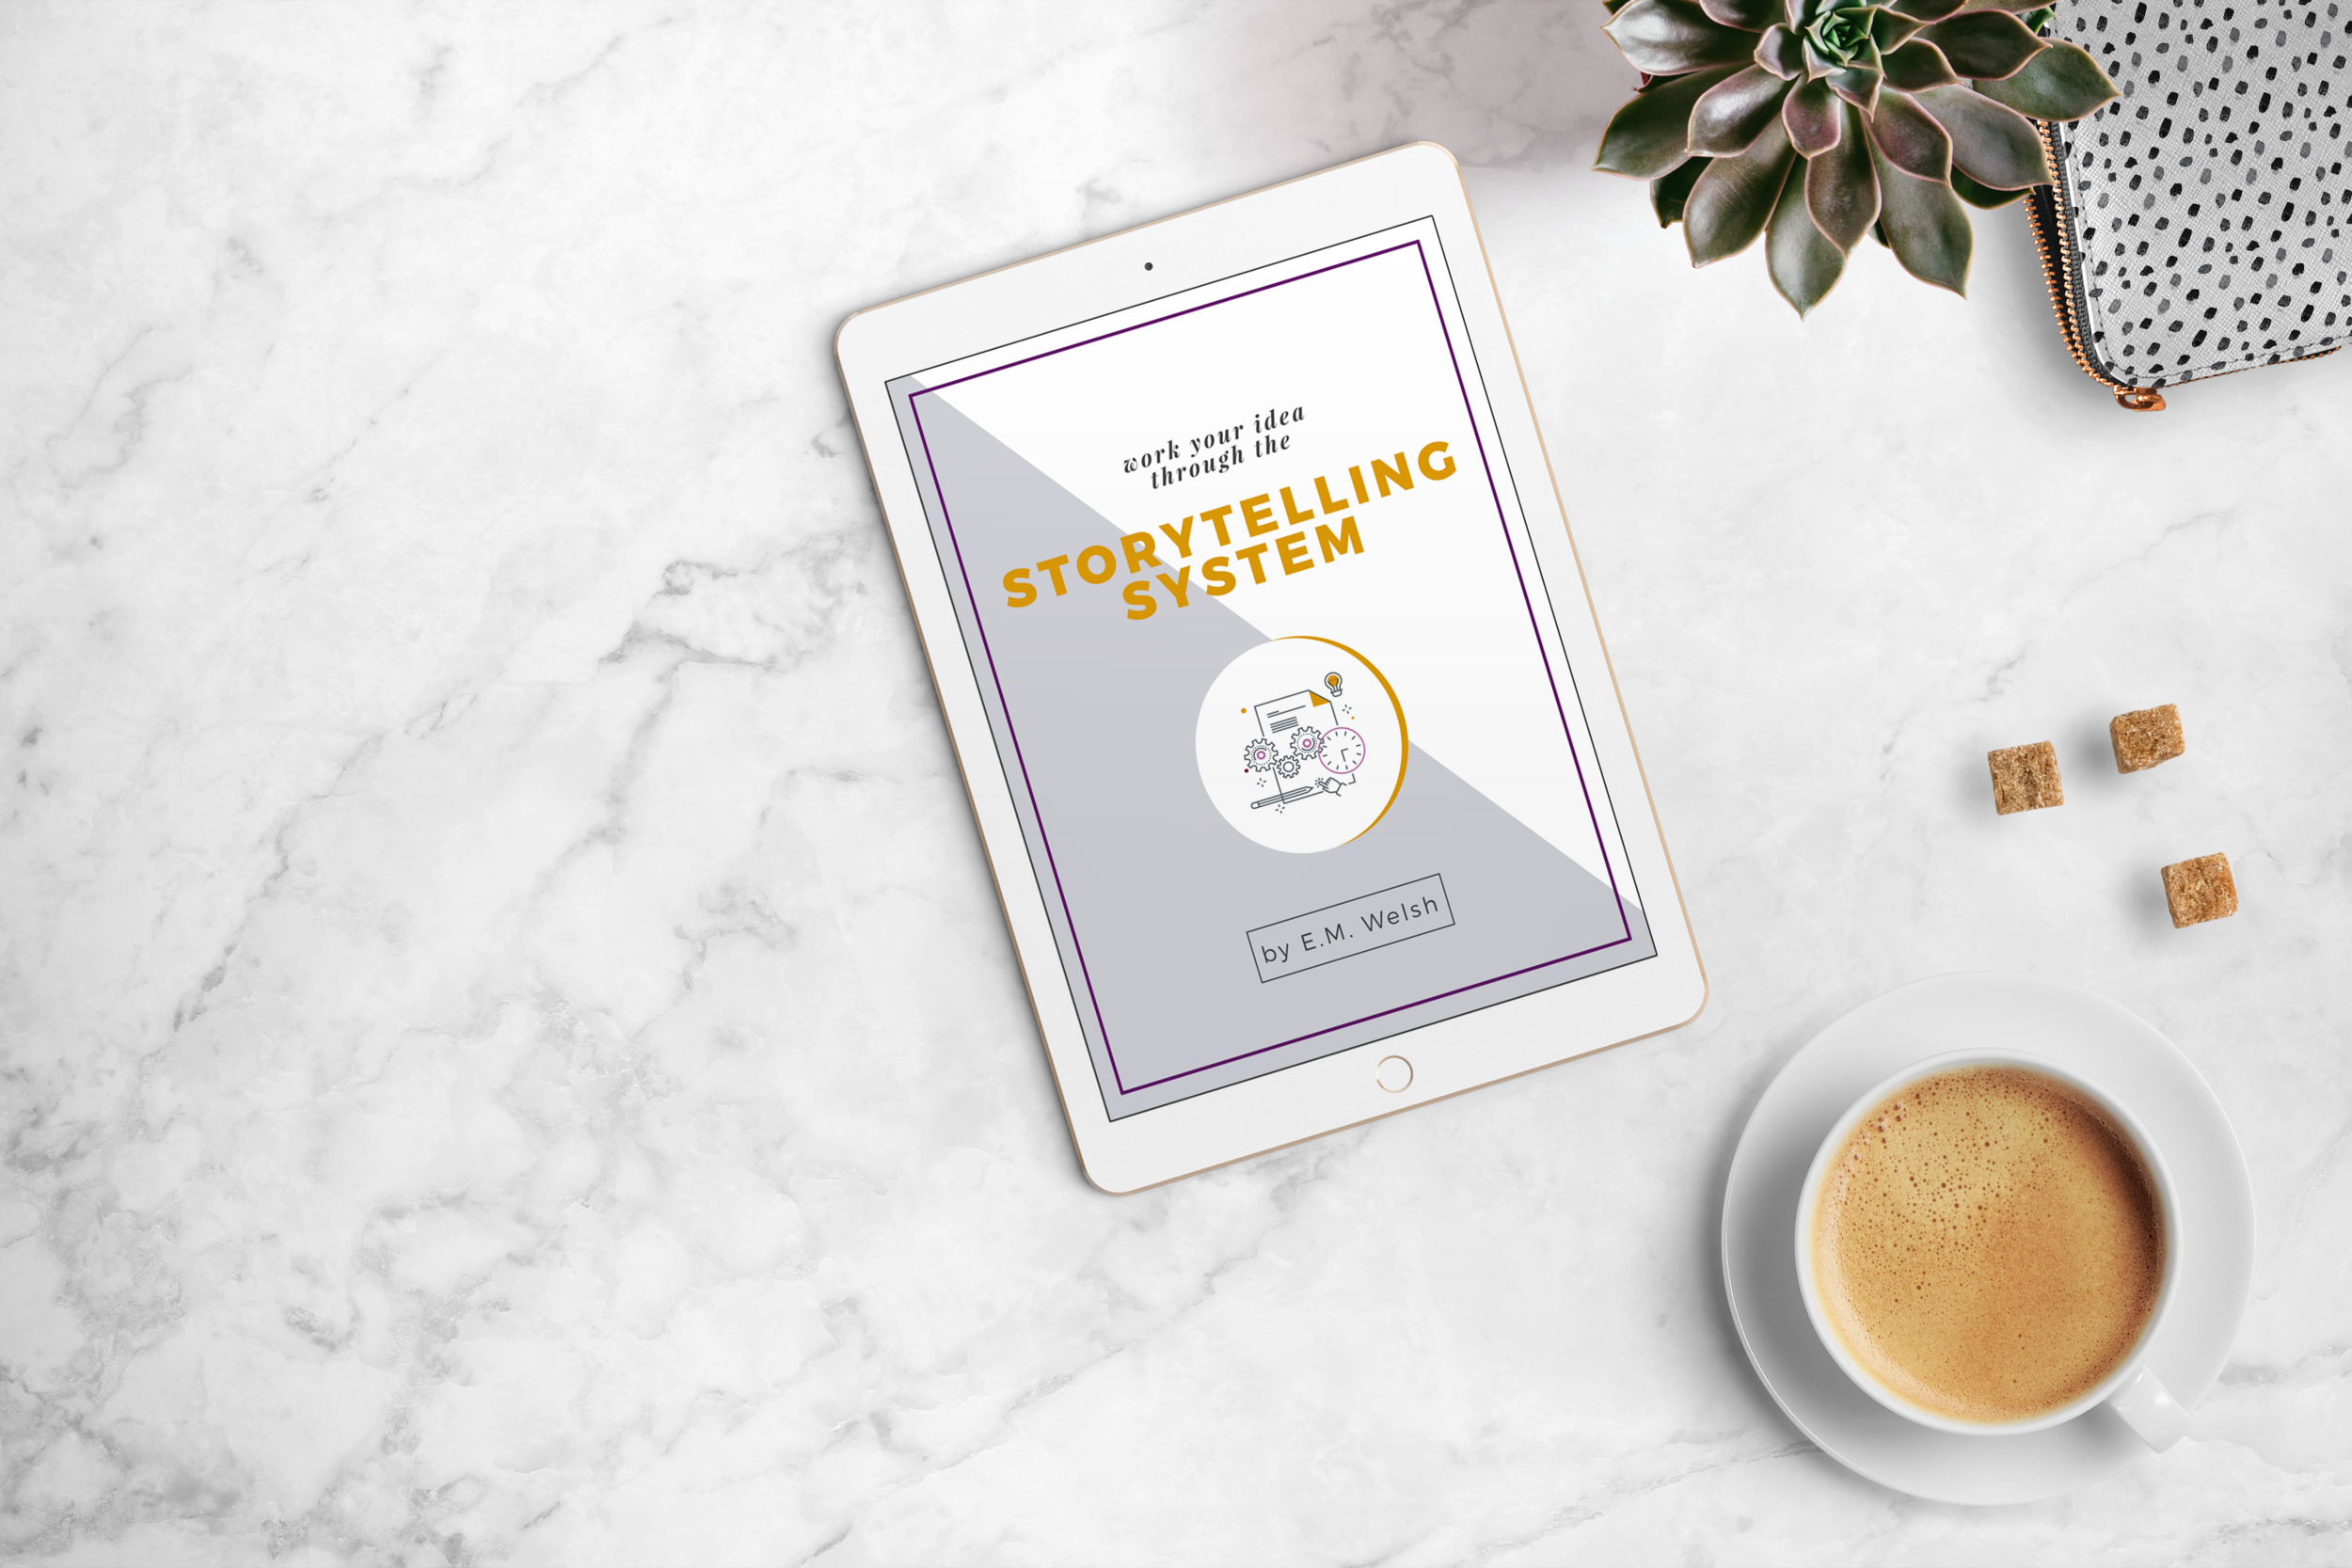 Download the ebook. - Grab the free ebook, The Storytelling System to learn exactly what makes storytelling so different today, then learn how to take your ideas and imagine them as novels, screenplays, plays, and video games.